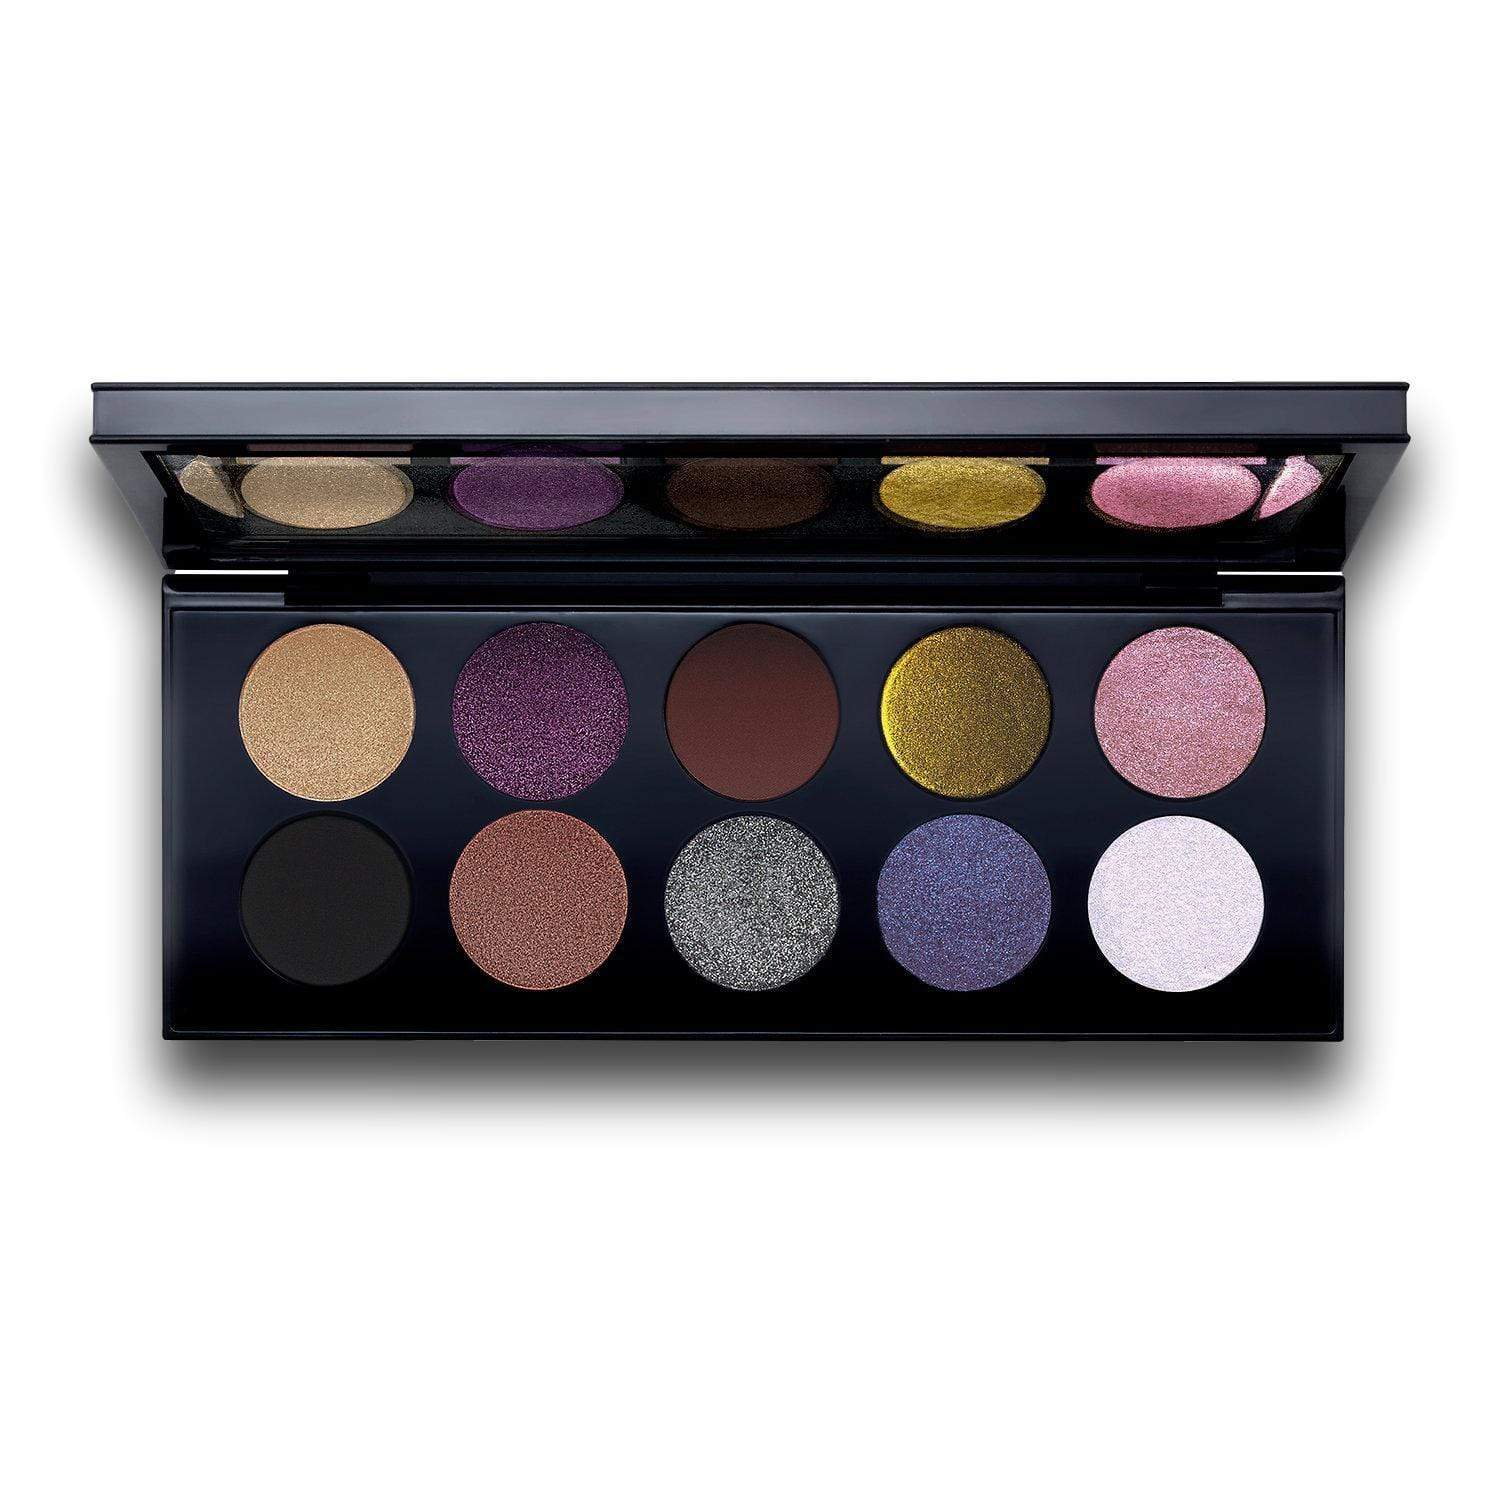 PAT MCGRATH LABS Mothership III Eyeshadow Palette - Subversive, eyeshadow palette, London Loves Beauty